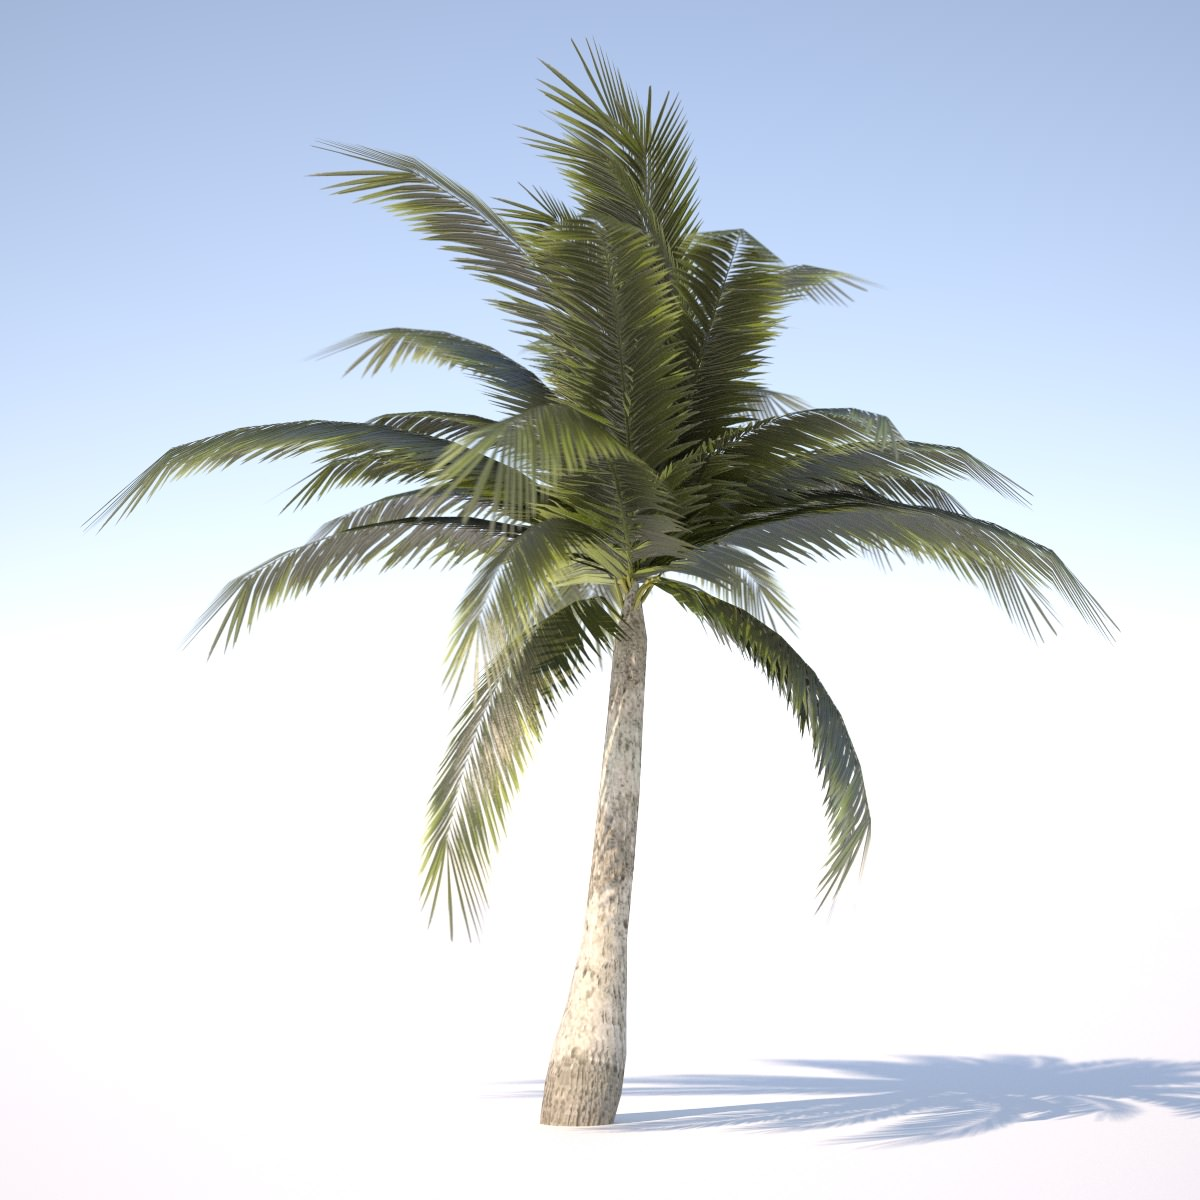 Coconut Palm Tree - 03 med poly 3D Model Game ready .obj ...